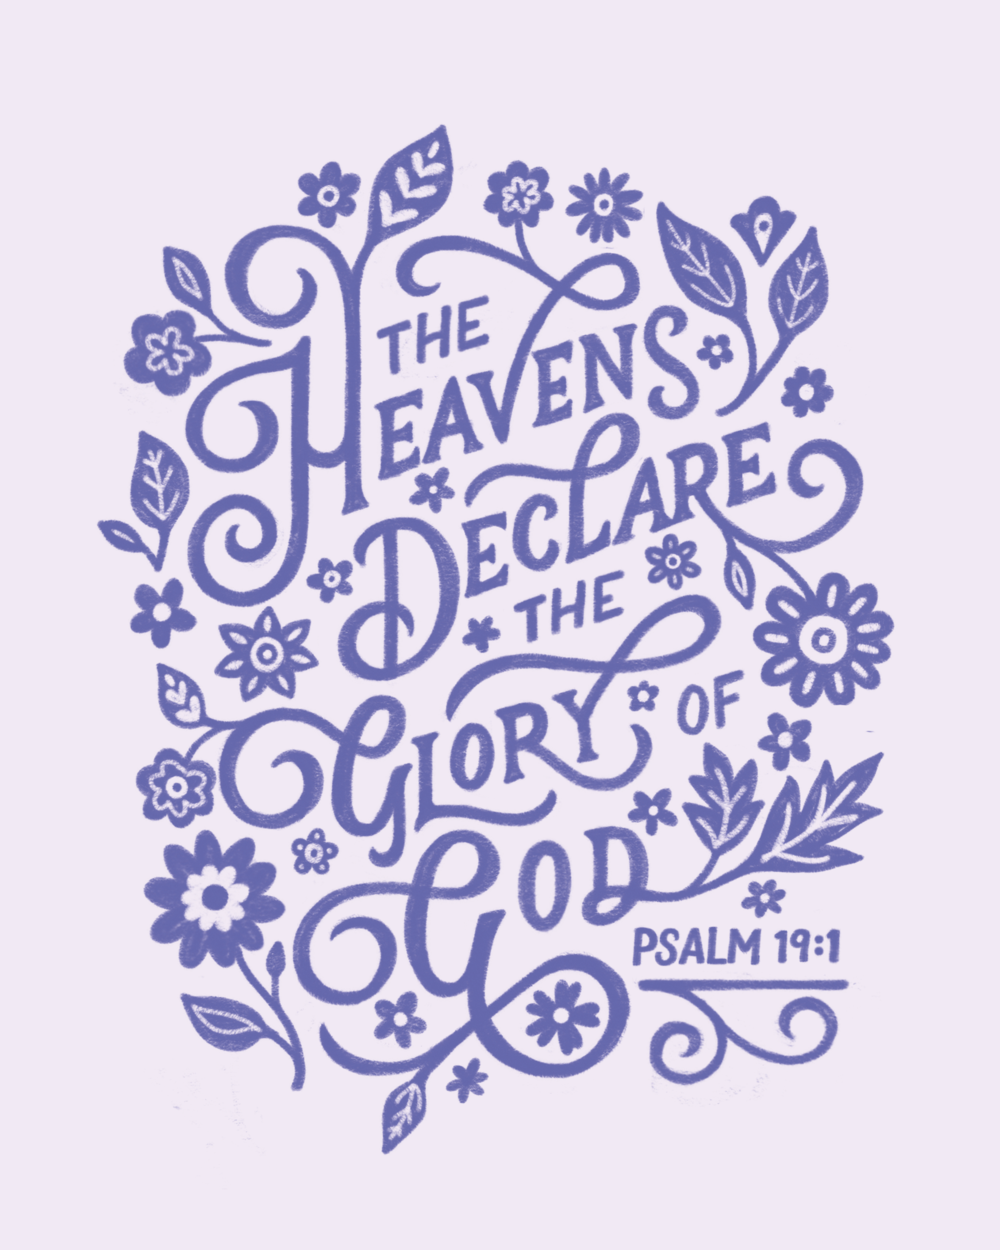 psalms19.png